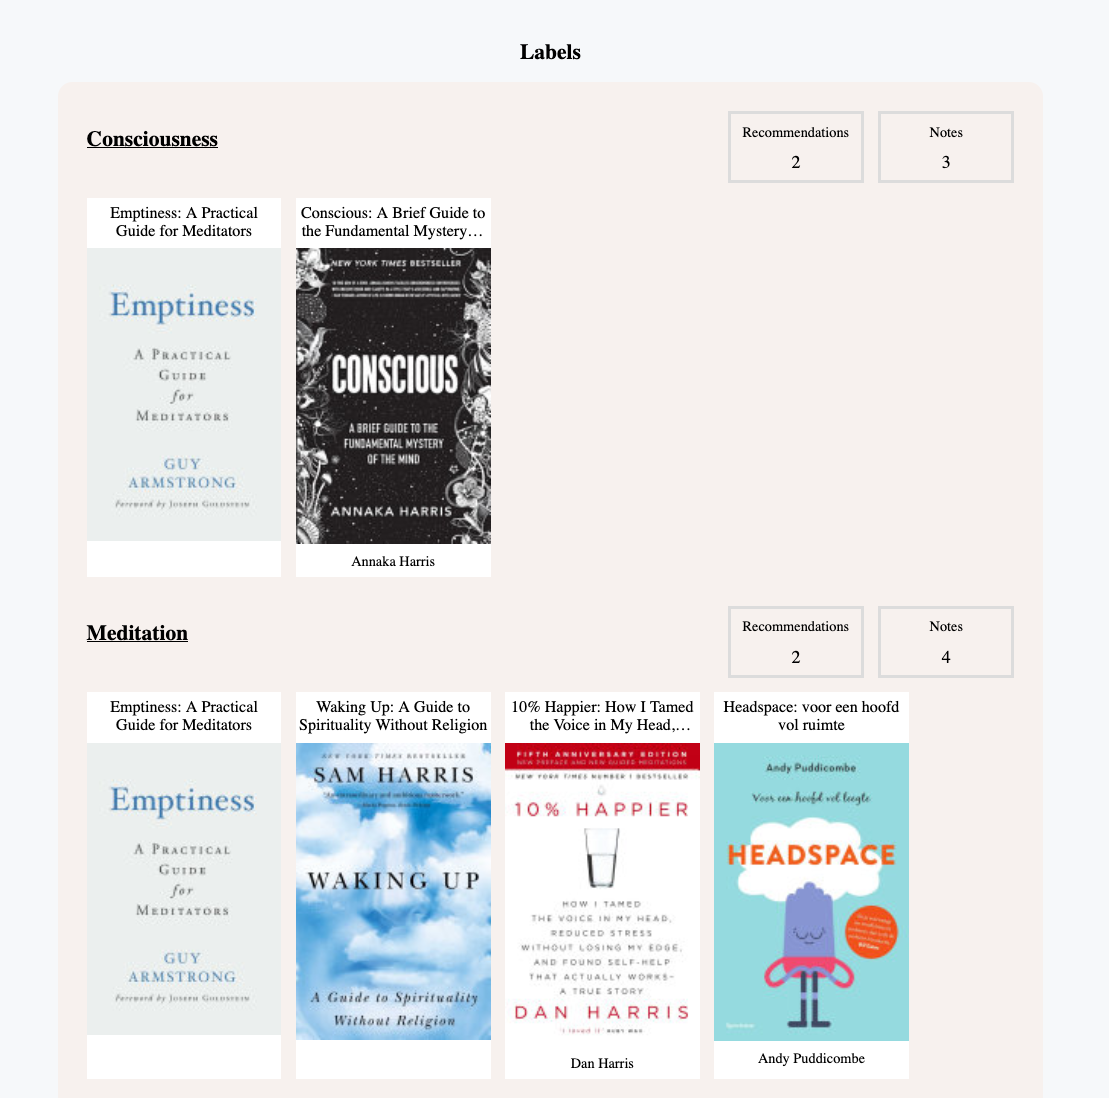 Labels of consciousness and mediation with books belonging to those topics